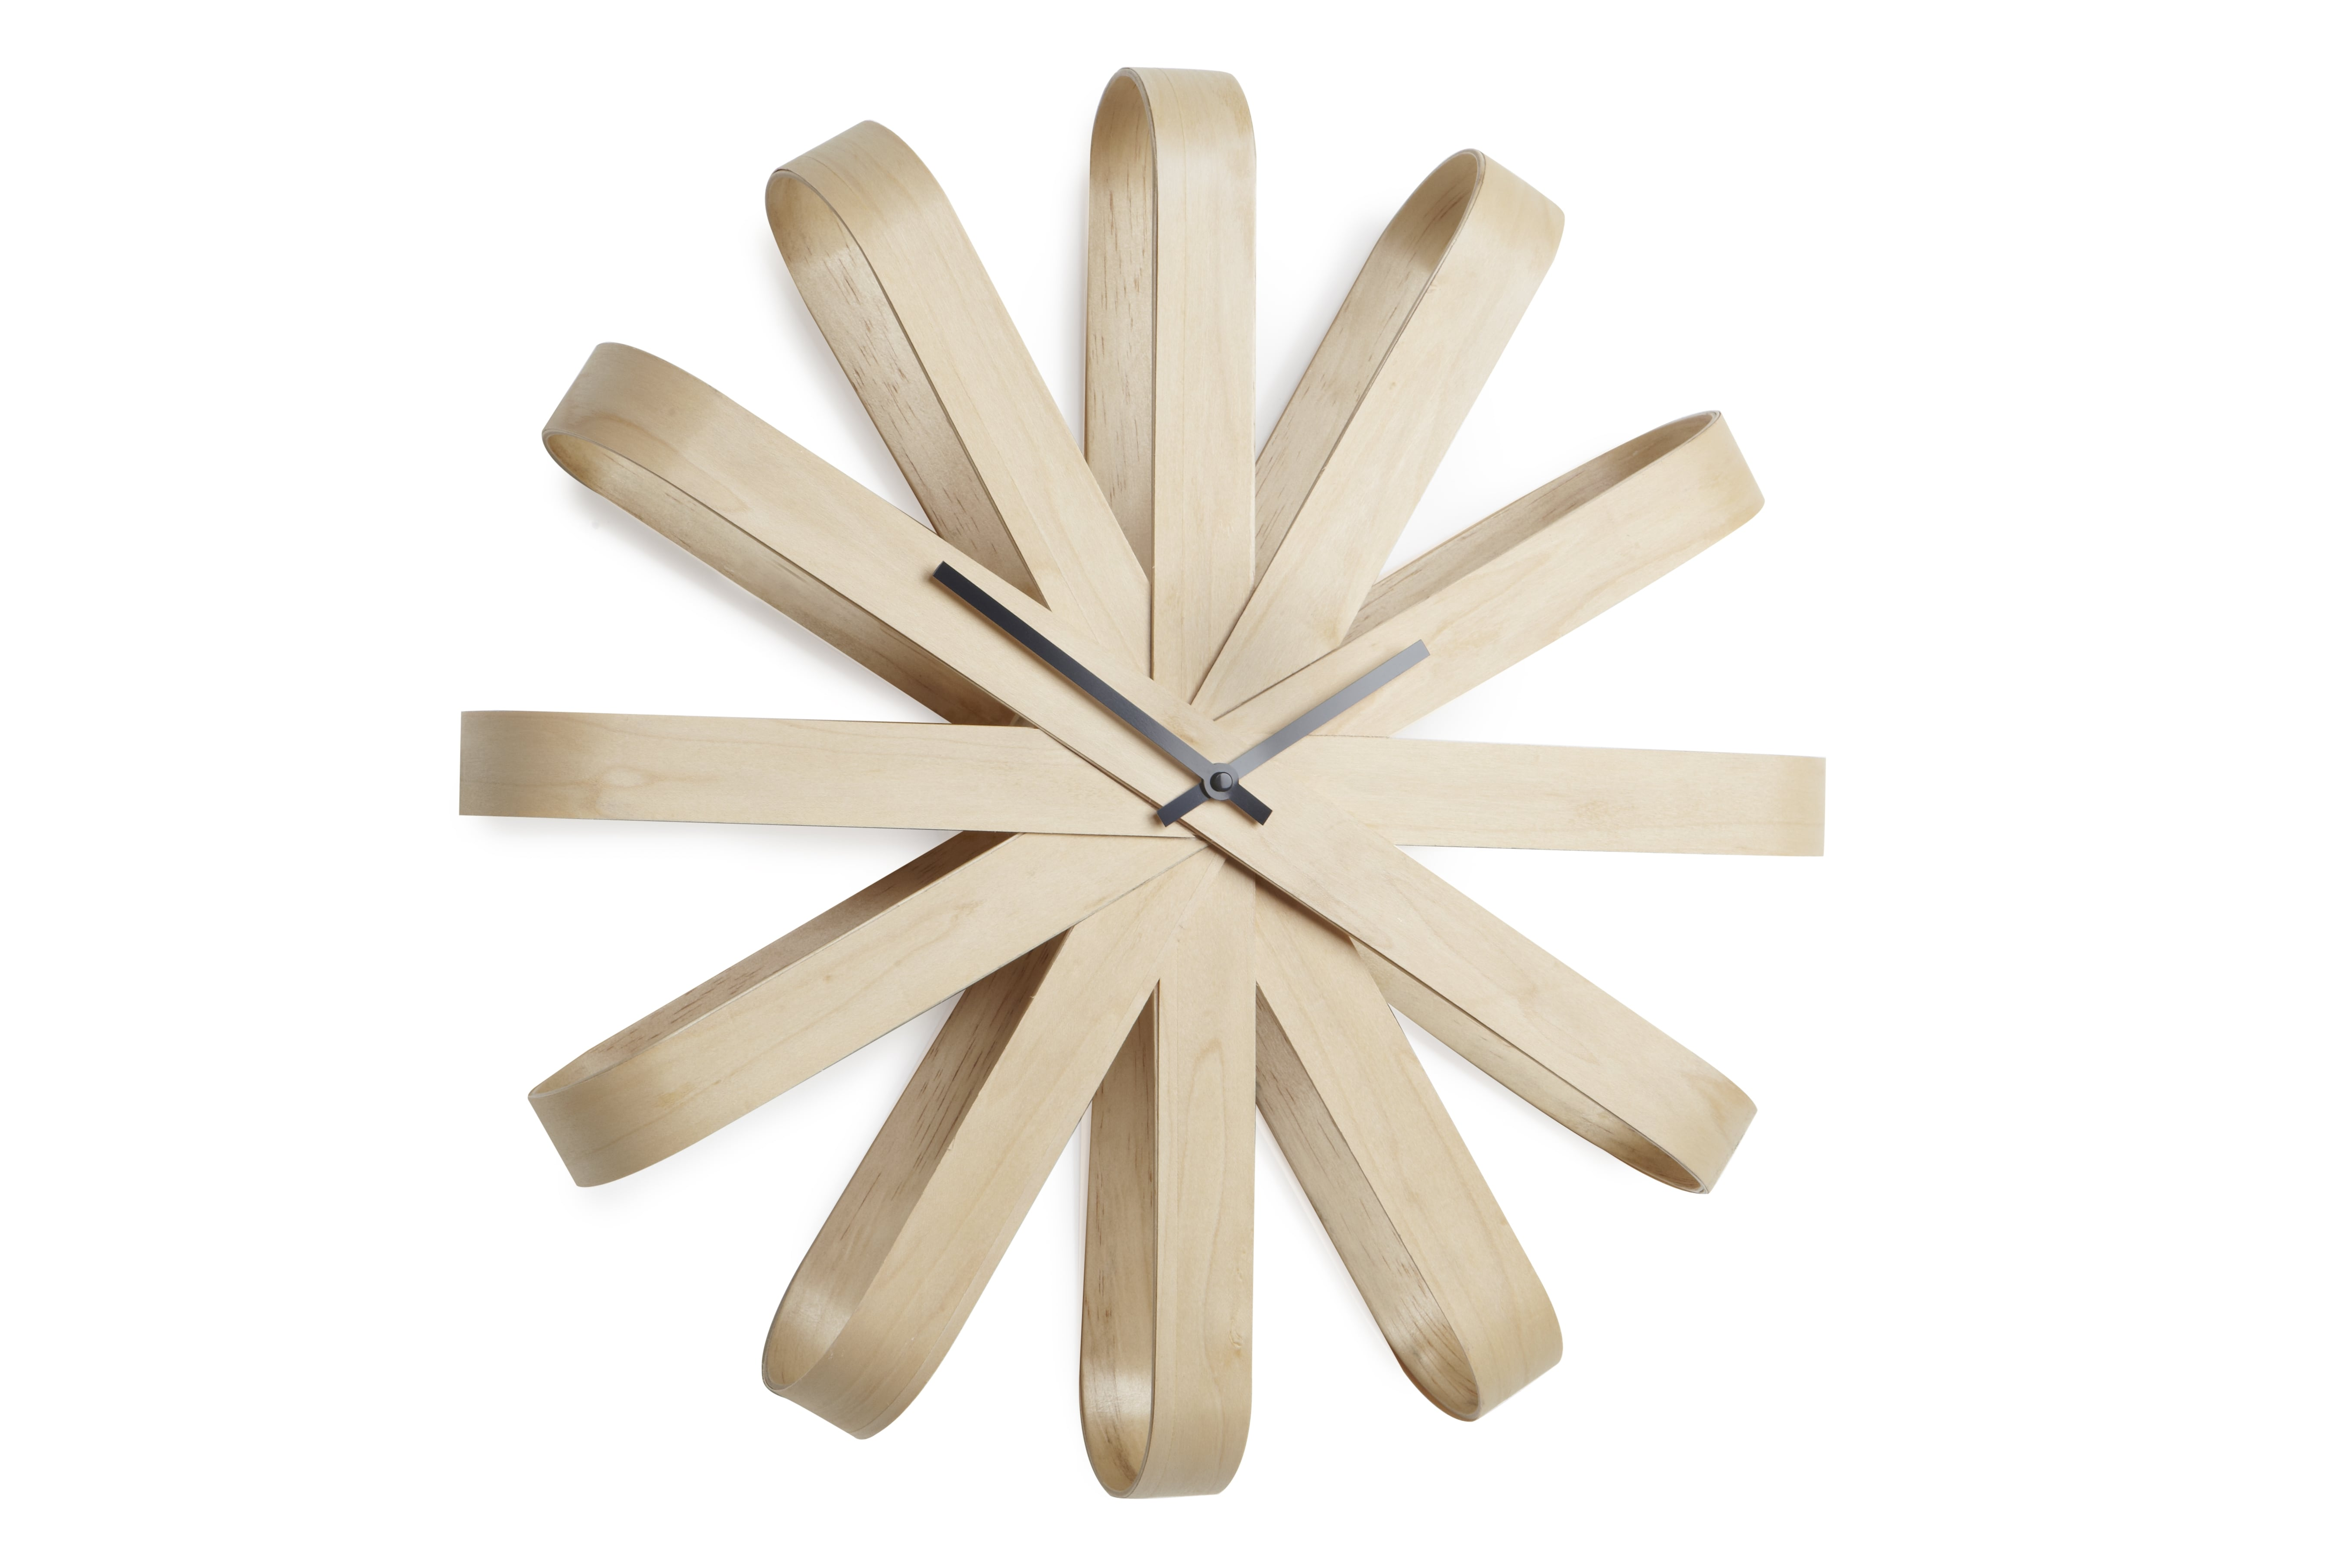 Big wall clock in wood for a design interior